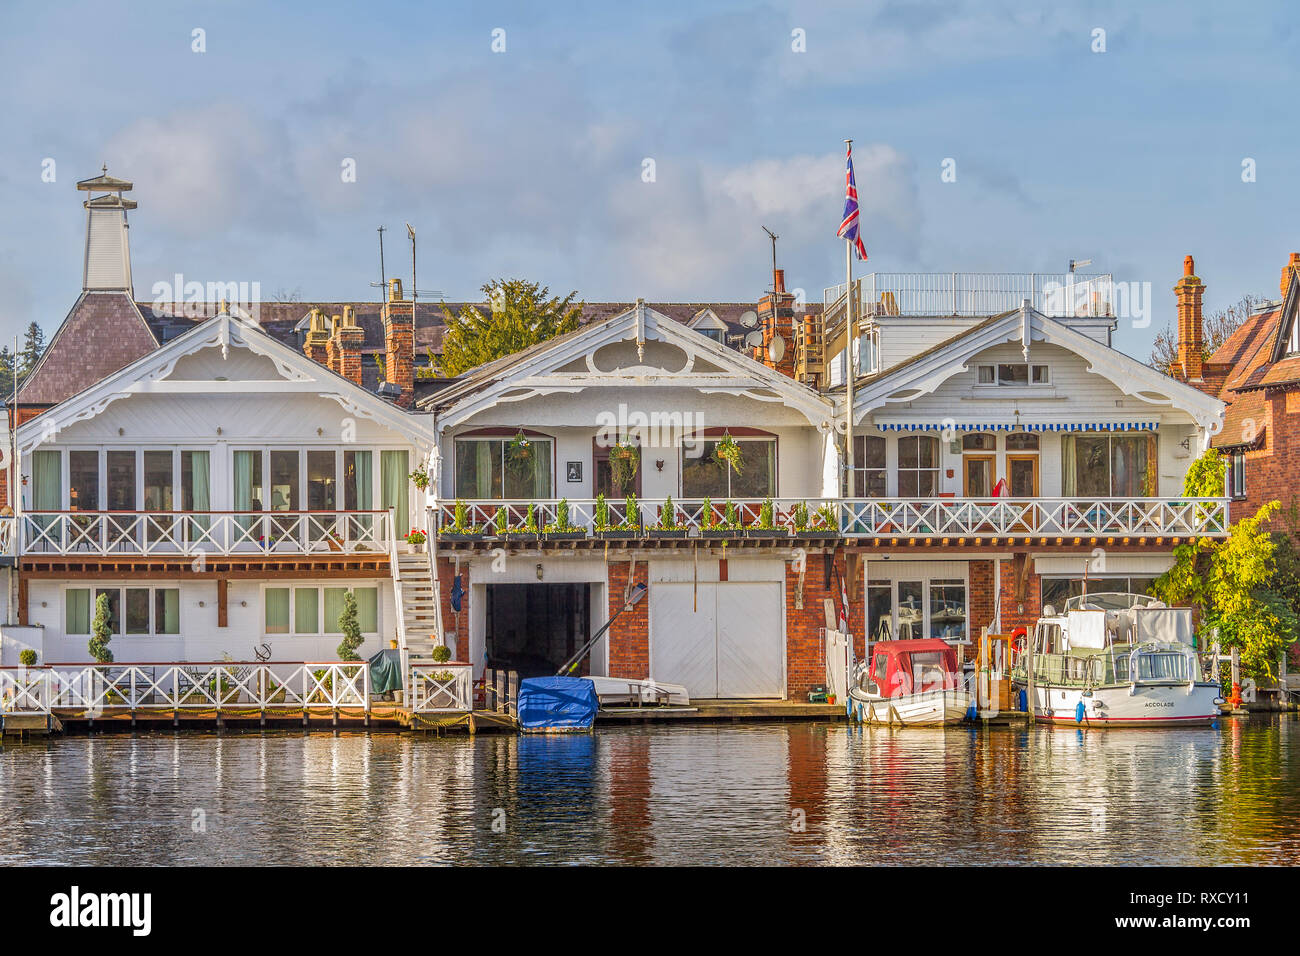 Boathouses On The River,  Henley On Thames, Oxfordshire, UK Stock Photo